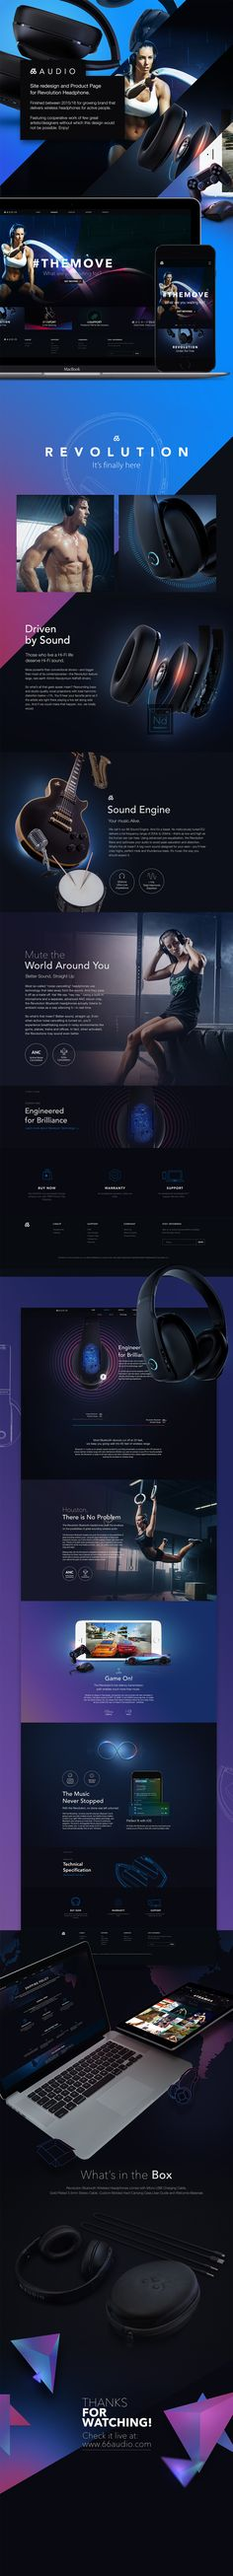 66AUDIO Site & Revolution Product Page Design  https://www.behance.net/gallery/37357861/66AUDIO-Site-Revolution-Product-Page-Design